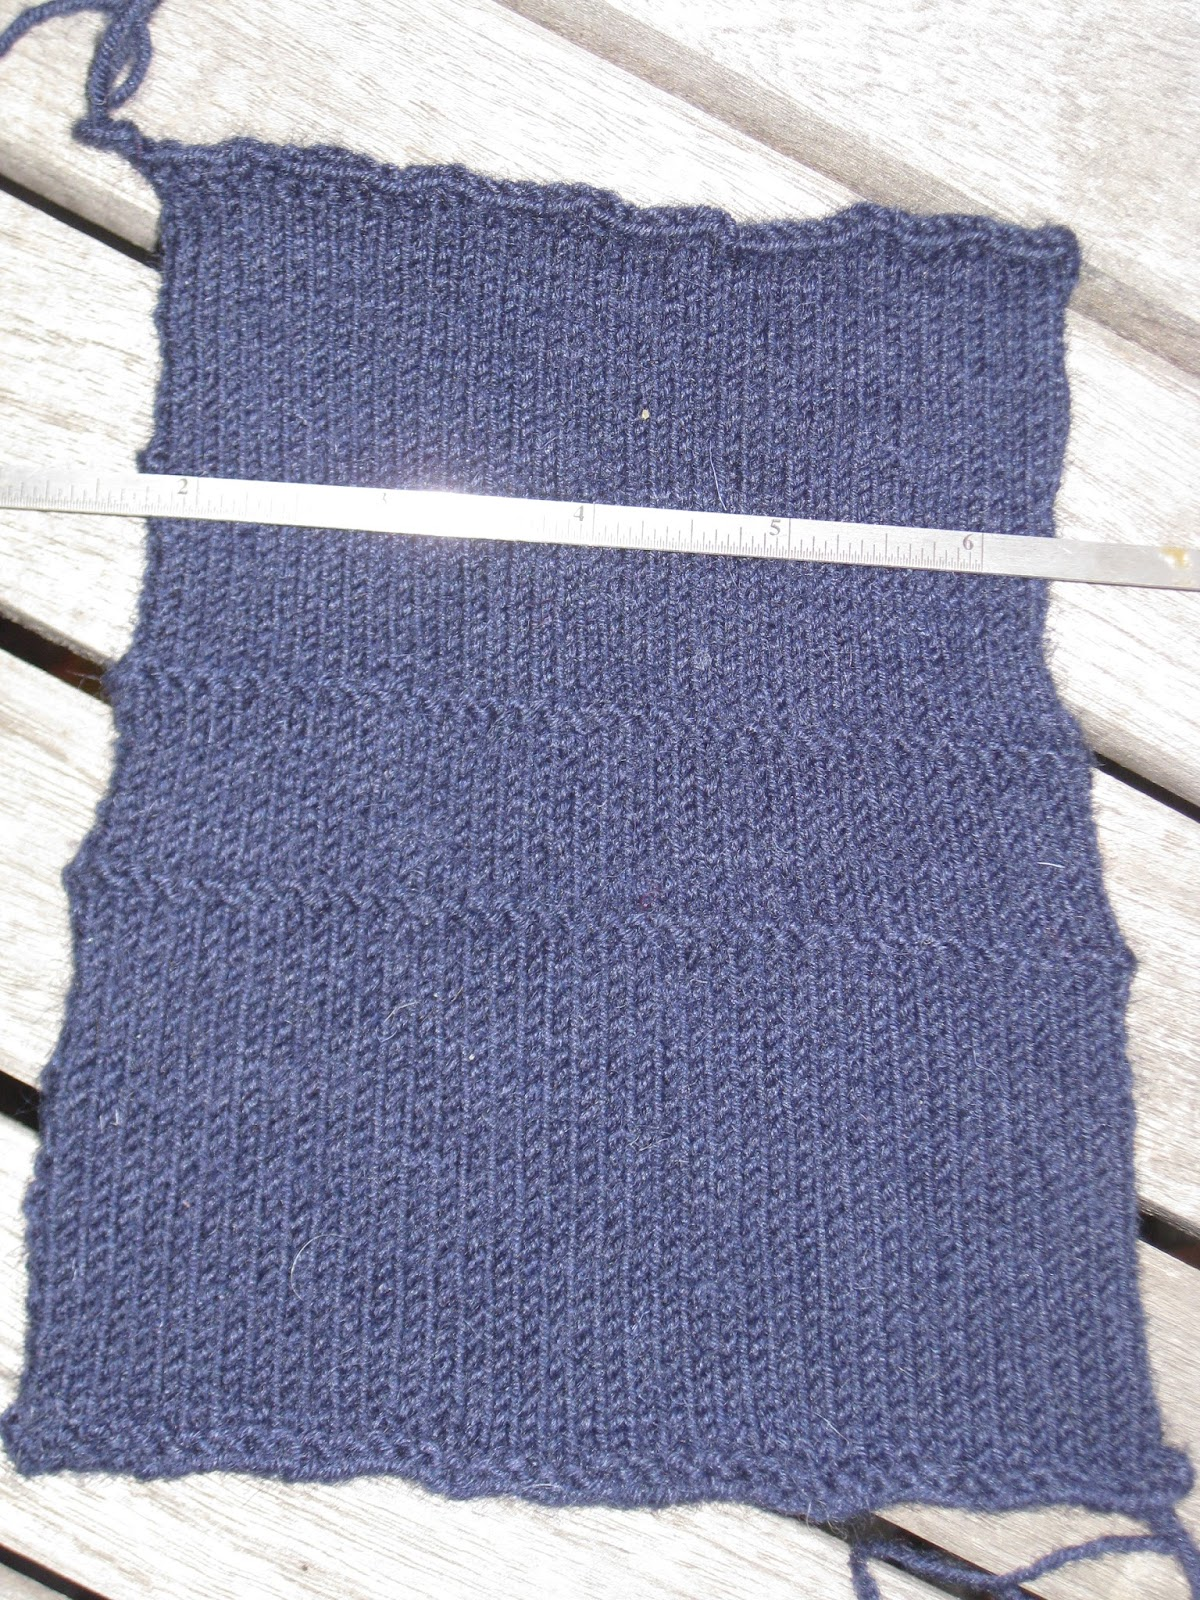 A Fisherman Knits: Koolaid